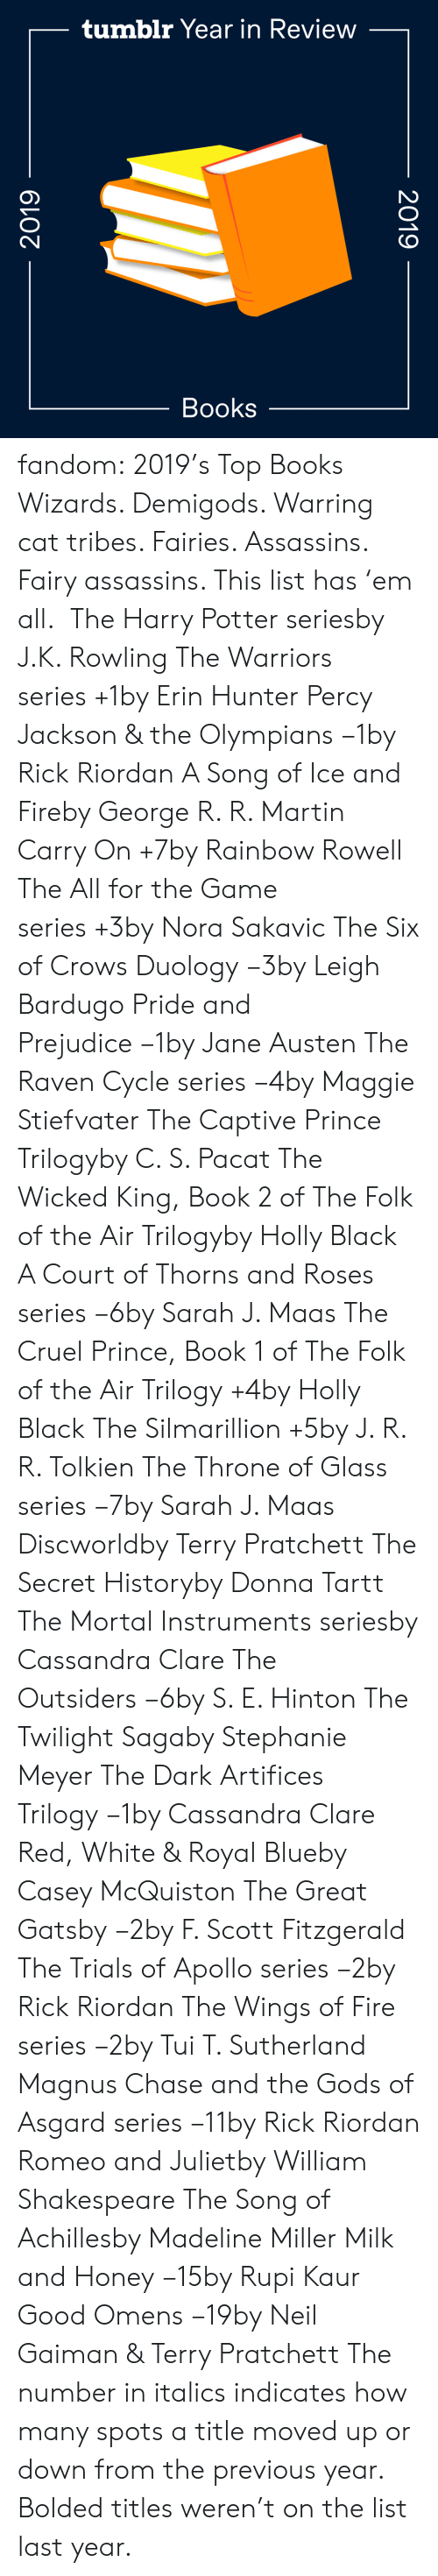 Wings: tumblr Year in Review  Books  2019  2019 fandom:  2019's Top Books  Wizards. Demigods. Warring cat tribes. Fairies. Assassins. Fairy assassins. This list has 'em all.   The Harry Potter seriesby J.K. Rowling  The Warriors series +1by Erin Hunter  Percy Jackson & the Olympians −1by Rick Riordan  A Song of Ice and Fireby George R. R. Martin  Carry On +7by Rainbow Rowell  The All for the Game series +3by Nora Sakavic  The Six of Crows Duology −3by Leigh Bardugo  Pride and Prejudice −1by Jane Austen  The Raven Cycle series −4by Maggie Stiefvater  The Captive Prince Trilogyby C. S. Pacat  The Wicked King, Book 2 of The Folk of the Air Trilogyby Holly Black  A Court of Thorns and Roses series −6by Sarah J. Maas  The Cruel Prince, Book 1 of The Folk of the Air Trilogy +4by Holly Black  The Silmarillion +5by J. R. R. Tolkien  The Throne of Glass series −7by Sarah J. Maas  Discworldby Terry Pratchett  The Secret Historyby Donna Tartt  The Mortal Instruments seriesby Cassandra Clare  The Outsiders −6by S. E. Hinton  The Twilight Sagaby Stephanie Meyer  The Dark Artifices Trilogy −1by Cassandra Clare  Red, White & Royal Blueby Casey McQuiston  The Great Gatsby −2by F. Scott Fitzgerald  The Trials of Apollo series −2by Rick Riordan  The Wings of Fire series −2by Tui T. Sutherland  Magnus Chase and the Gods of Asgard series −11by Rick Riordan  Romeo and Julietby William Shakespeare  The Song of Achillesby Madeline Miller  Milk and Honey −15by Rupi Kaur  Good Omens −19by Neil Gaiman & Terry Pratchett The number in italics indicates how many spots a title moved up or down from the previous year. Bolded titles weren't on the list last year.